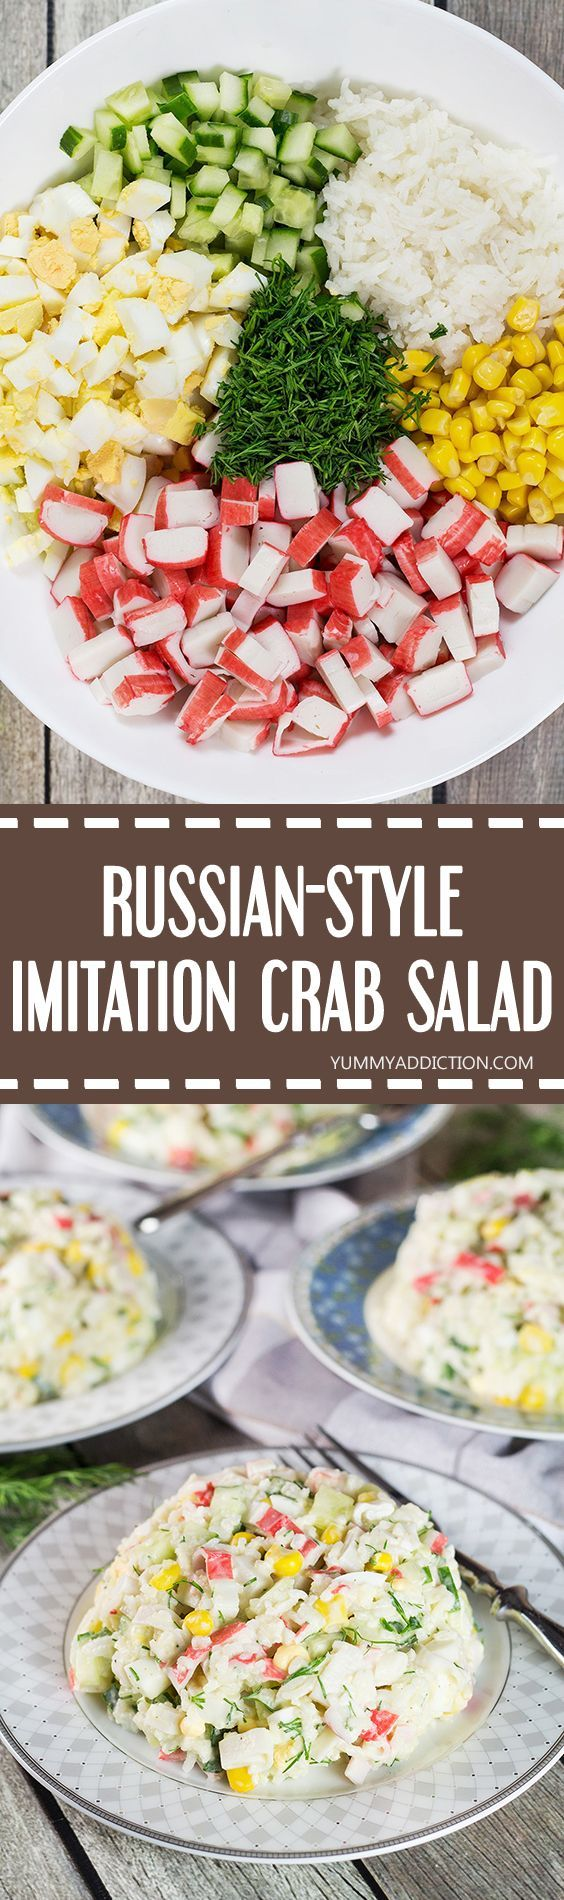 Check out this Russian version of the Imitation Crab Salad. Featuring corn, rice, eggs, and cucumber, it's comforting, filling, and crazy delicious! | yummyaddiction.com